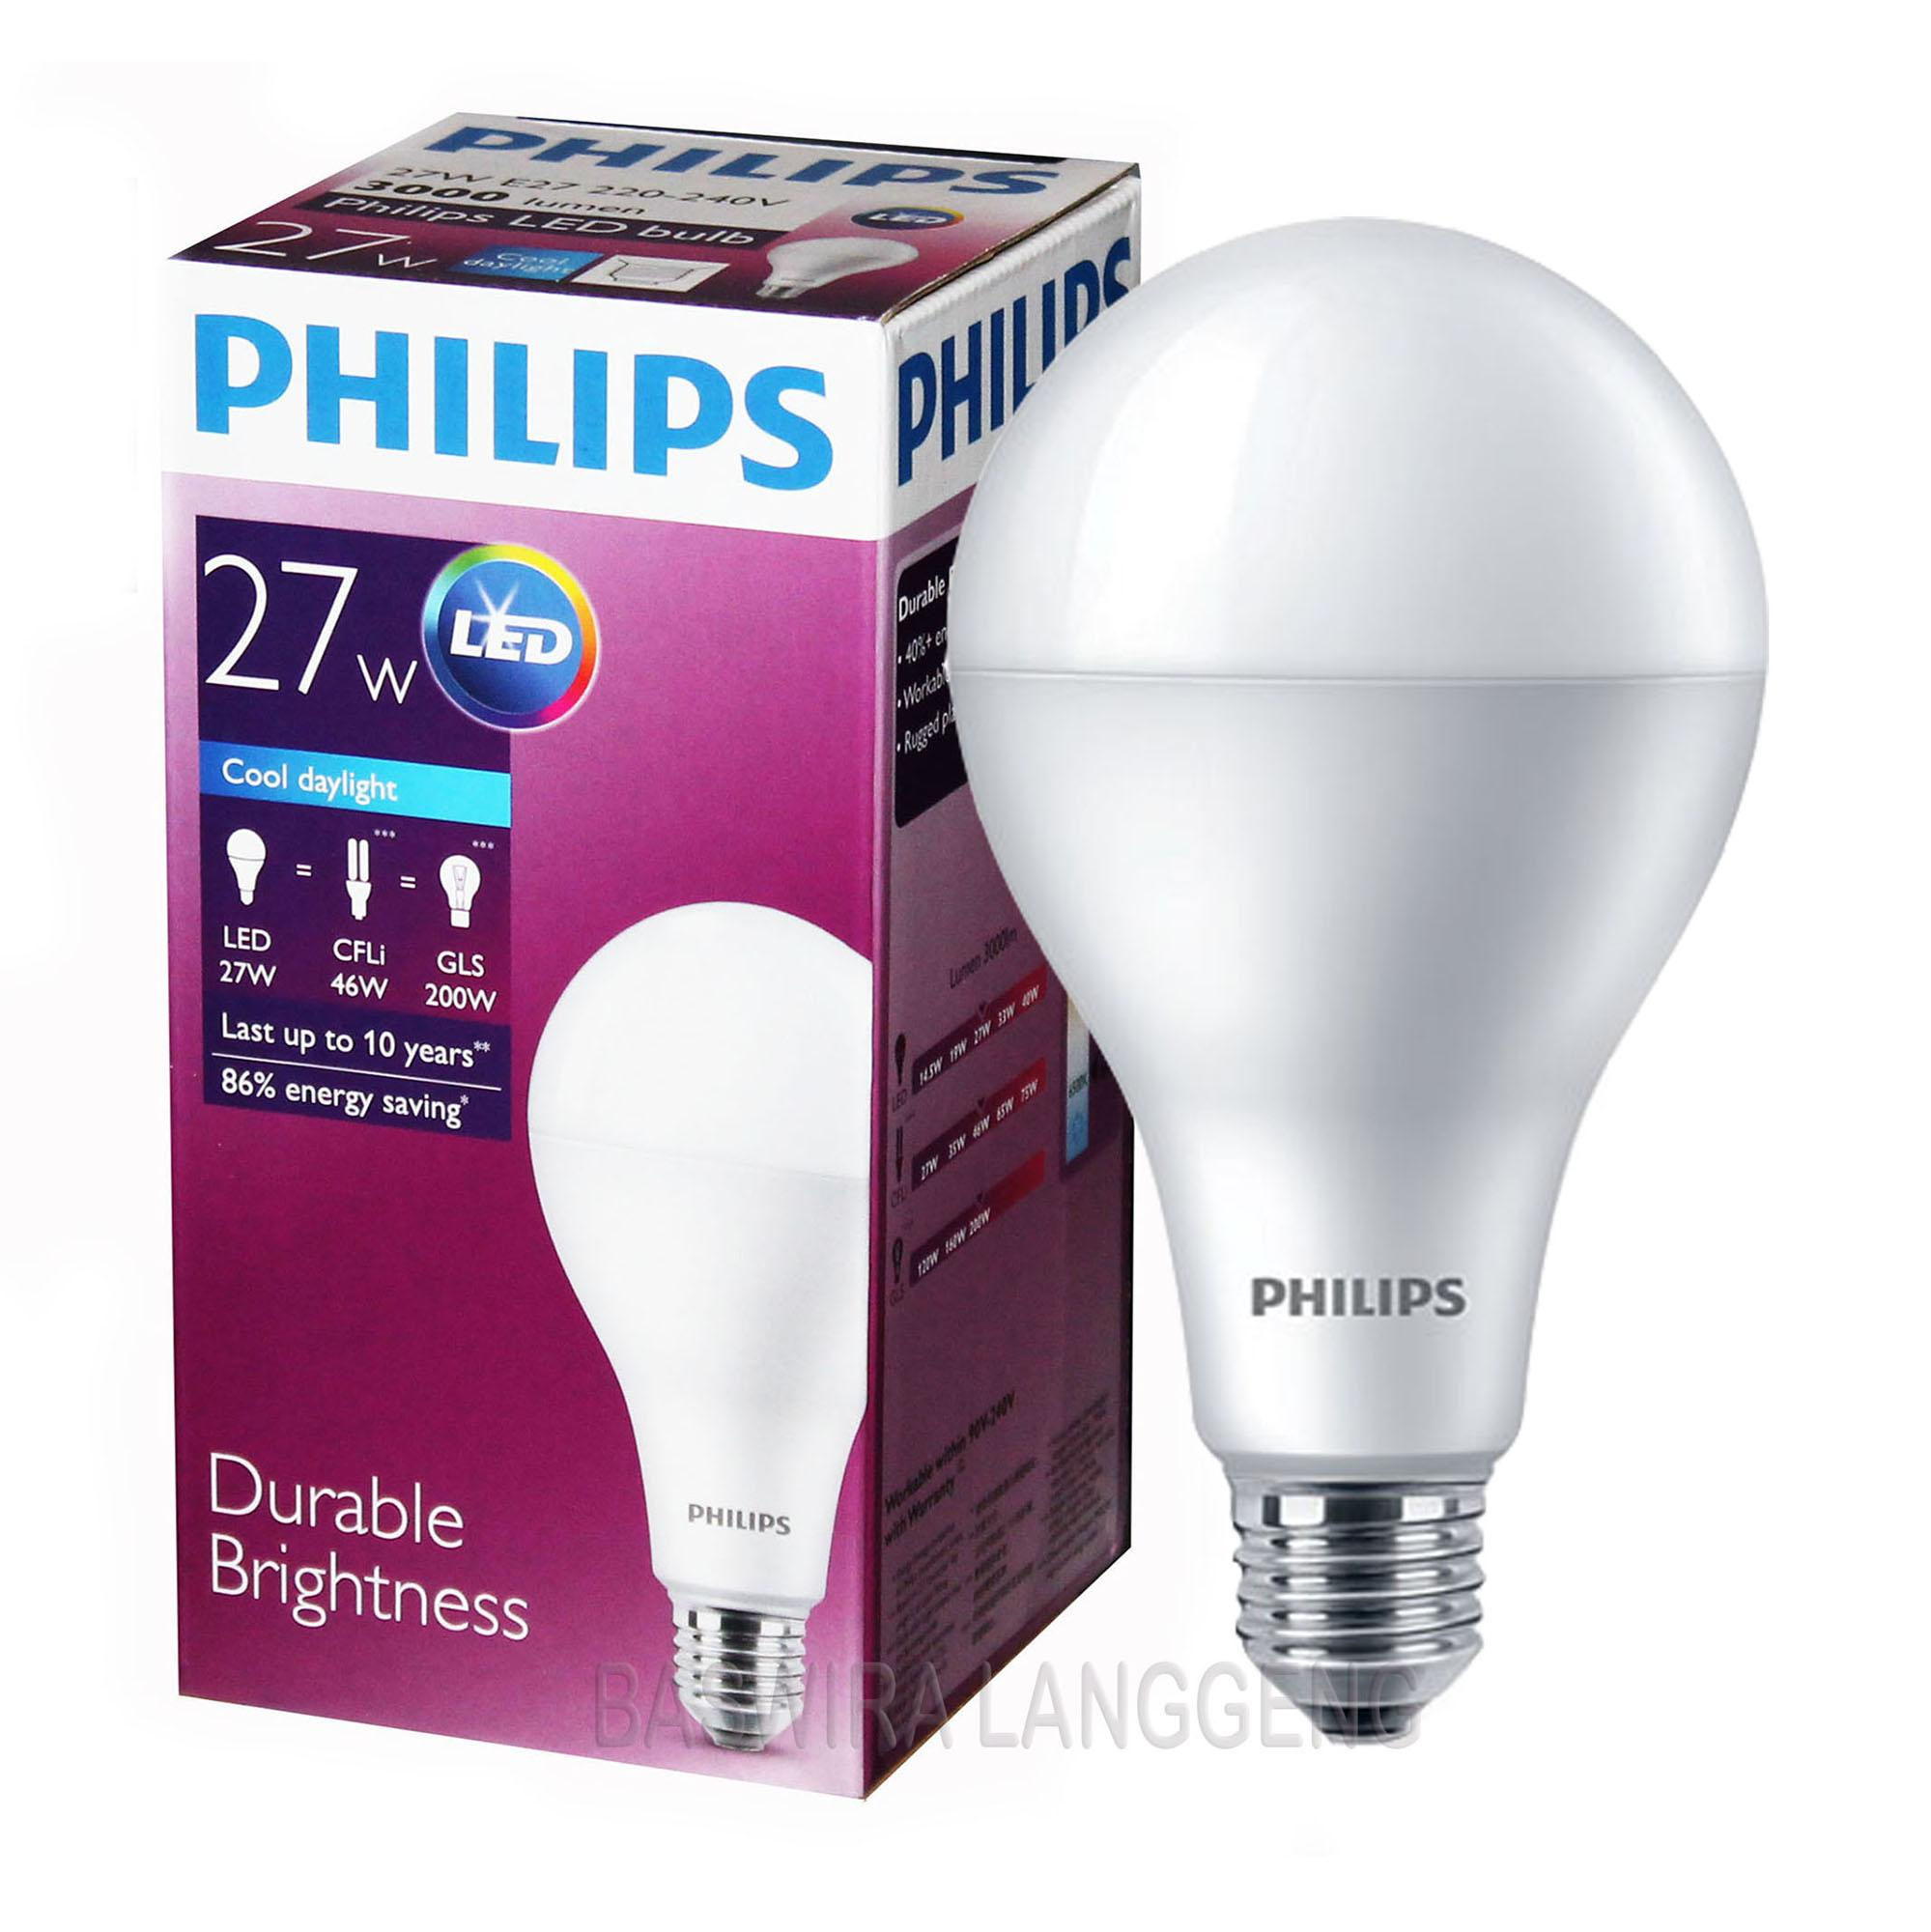 PHILIPS Lampu Led Bulb 27 Wat 27 W 27Watt 27W Putih NEW MODEL